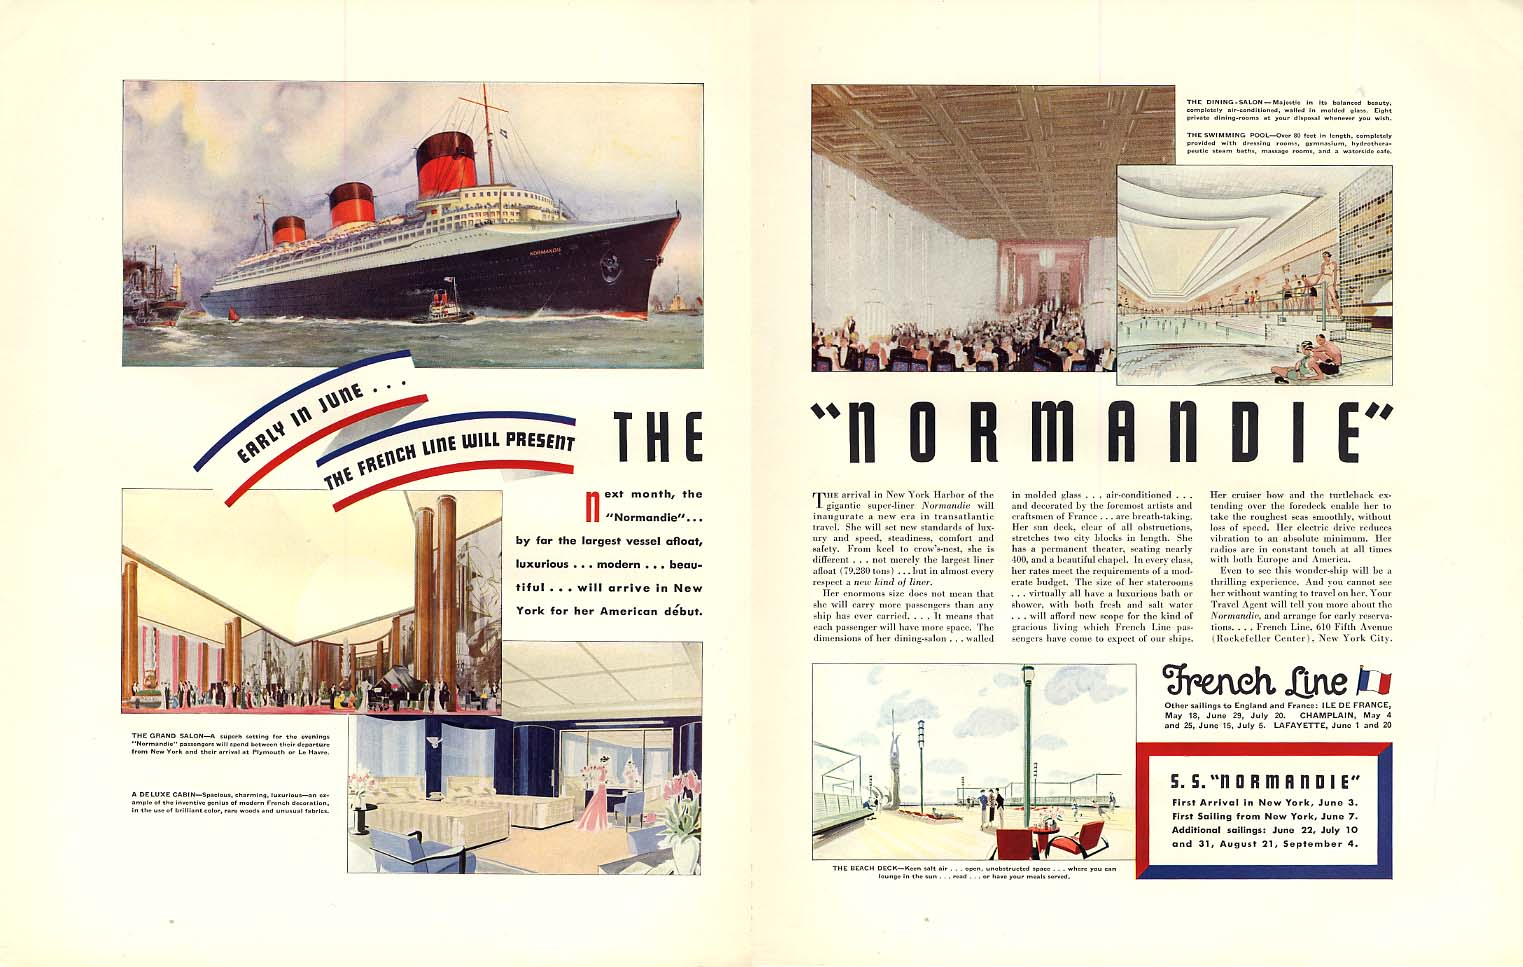 Early in June the French Line will oresent the S S Normandie ad 1935 F